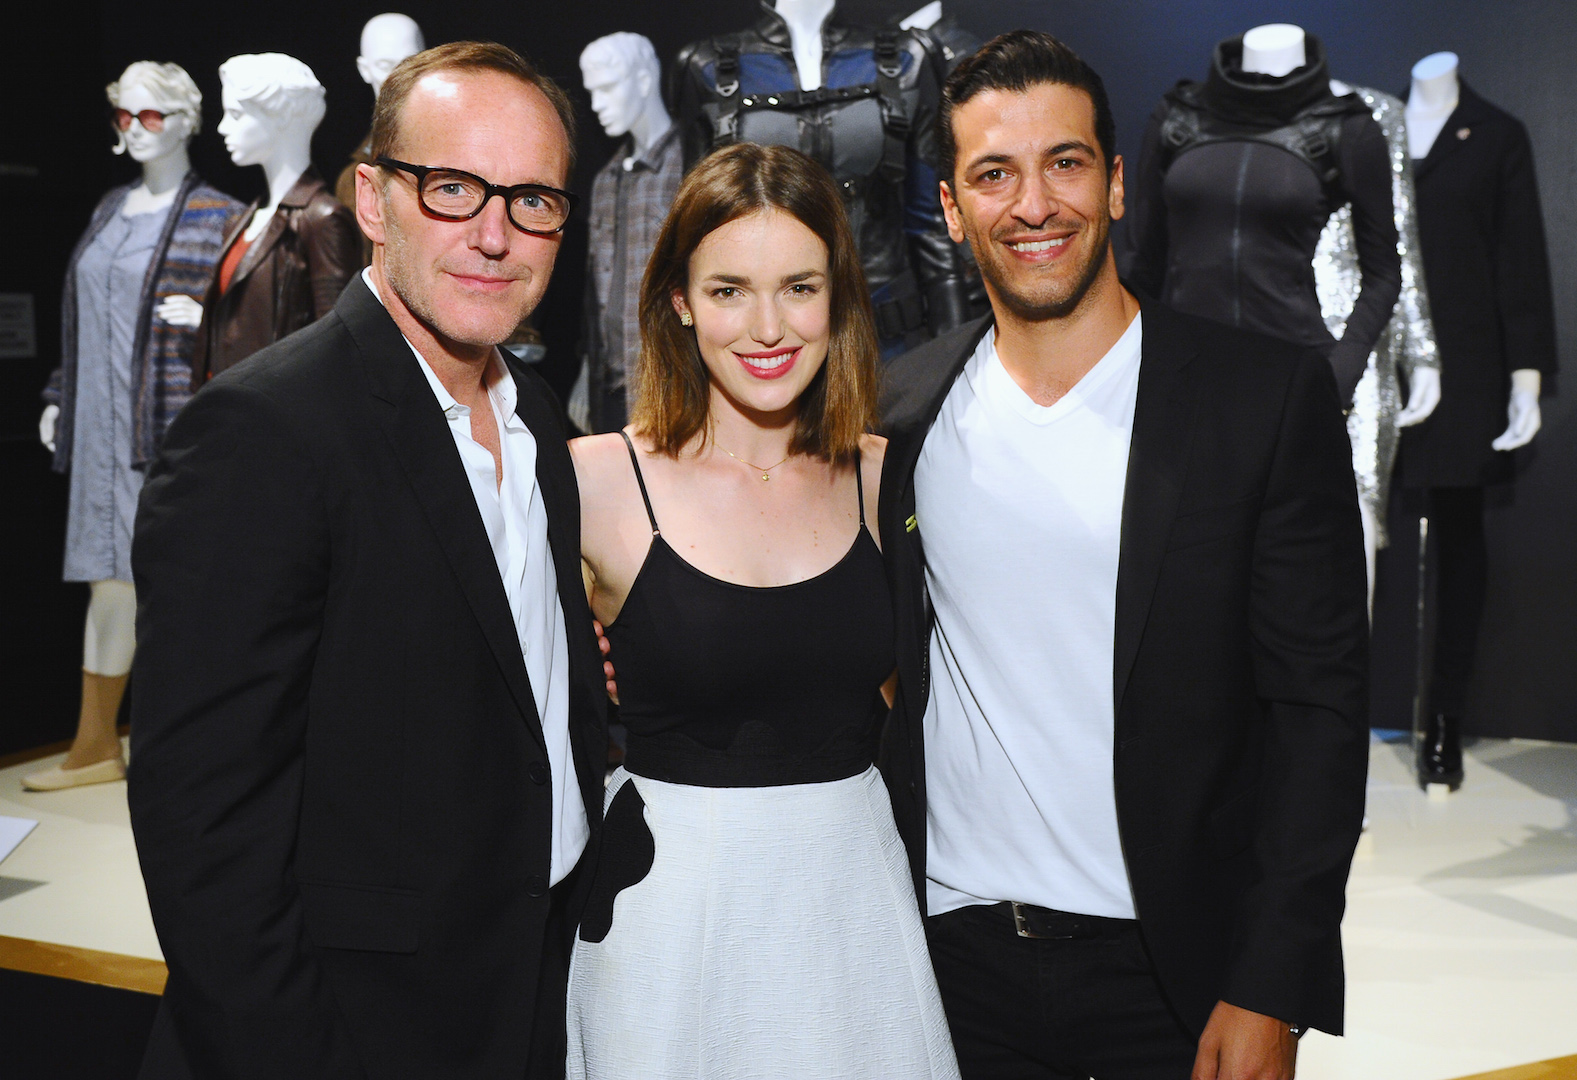 "Clark Gregg, from left, Elizabeth Henstridge and Simon Kassianides, of ""Marvel's Agents of S.H.I.E.L.D."" at The 9th Annual Outstanding Art of Television Costume Design Exhibition opening at the FIDM Museum & Galleries on the Park on Saturday, July 18, 2015, in Los Angeles. The Television Academy and FIDM Museum honored this year's Emmy(R) Award winners in Outstanding Costume Design at the opening reception for this annual special exhibition. (Photo by Vince Bucci/Invision for the Television Academy/AP Images)"